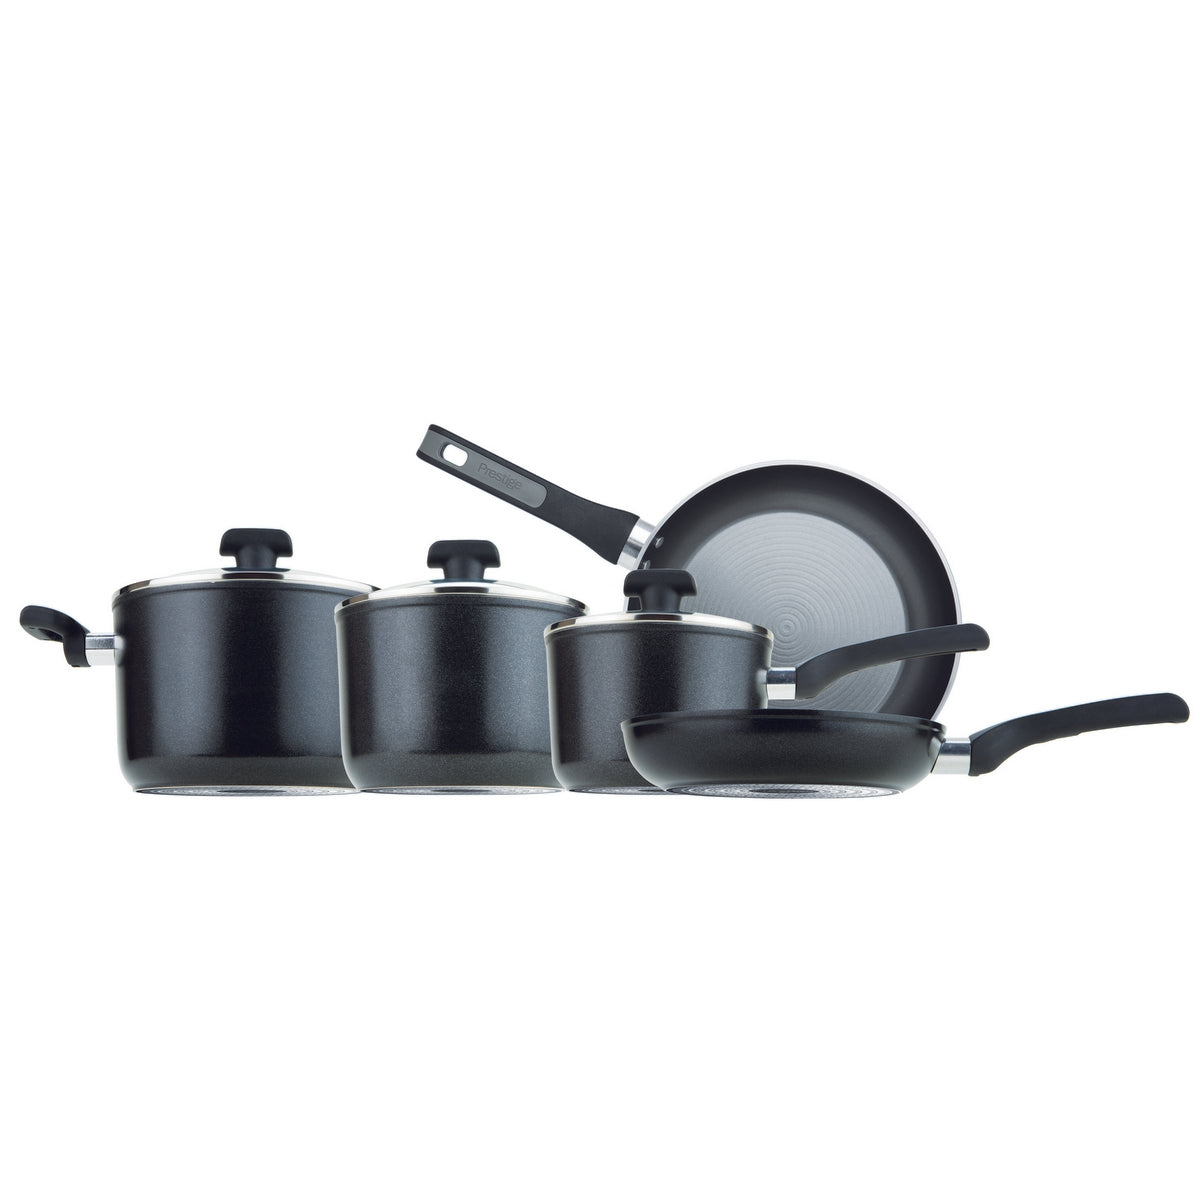 An image of Prestige Dura Forge 5 Piece Pan Set